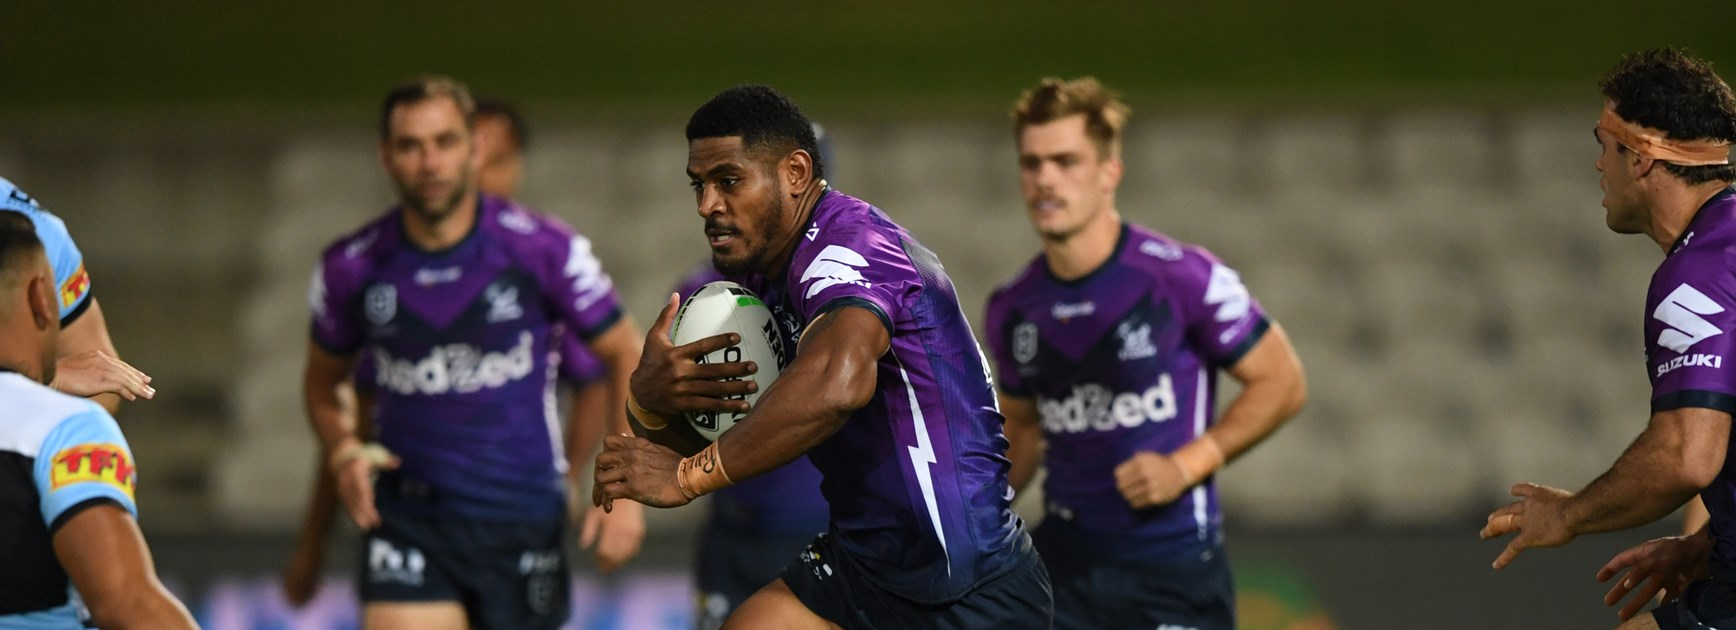 Back in business: Injury won't stop big Tui from return